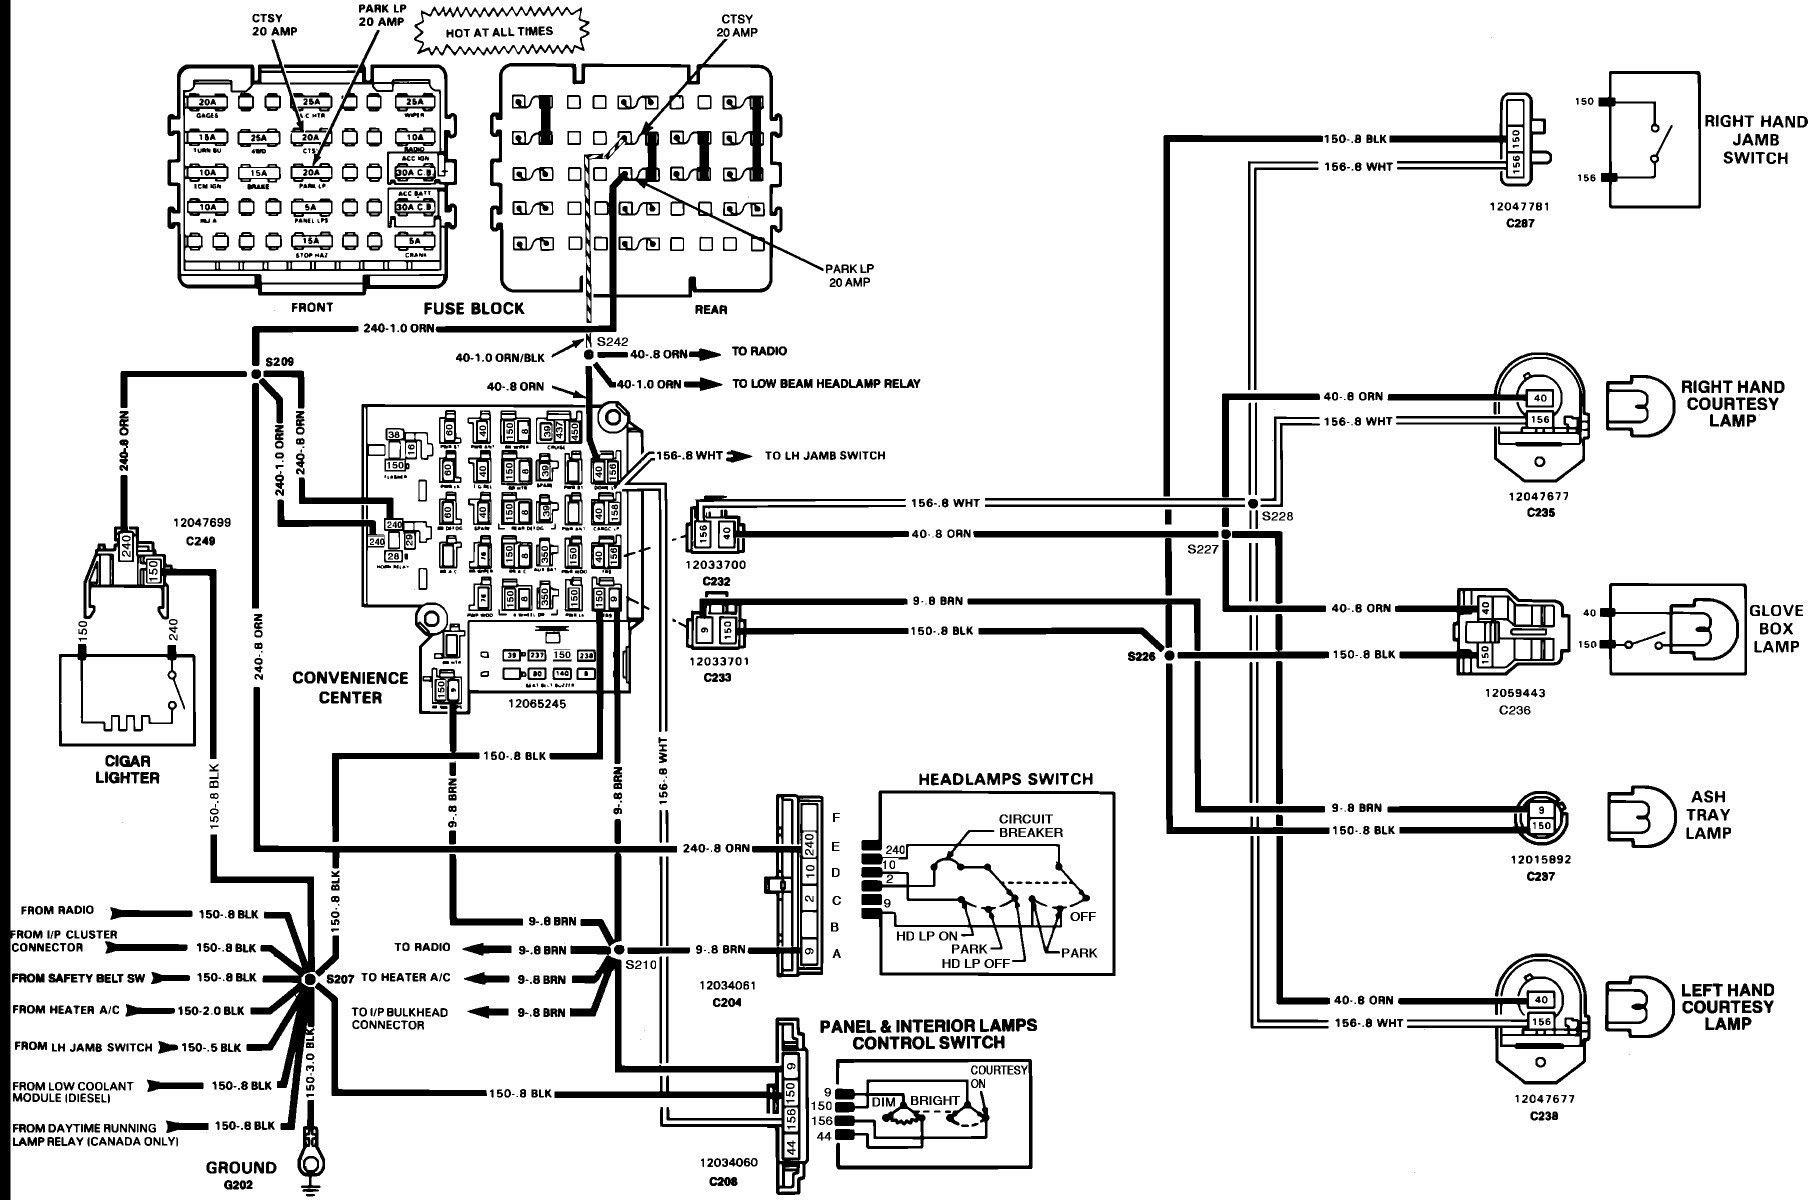 New Dual Electric Radiator Fan Wiring Diagram Chevy S10 Electrical Diagram Chevy Trucks